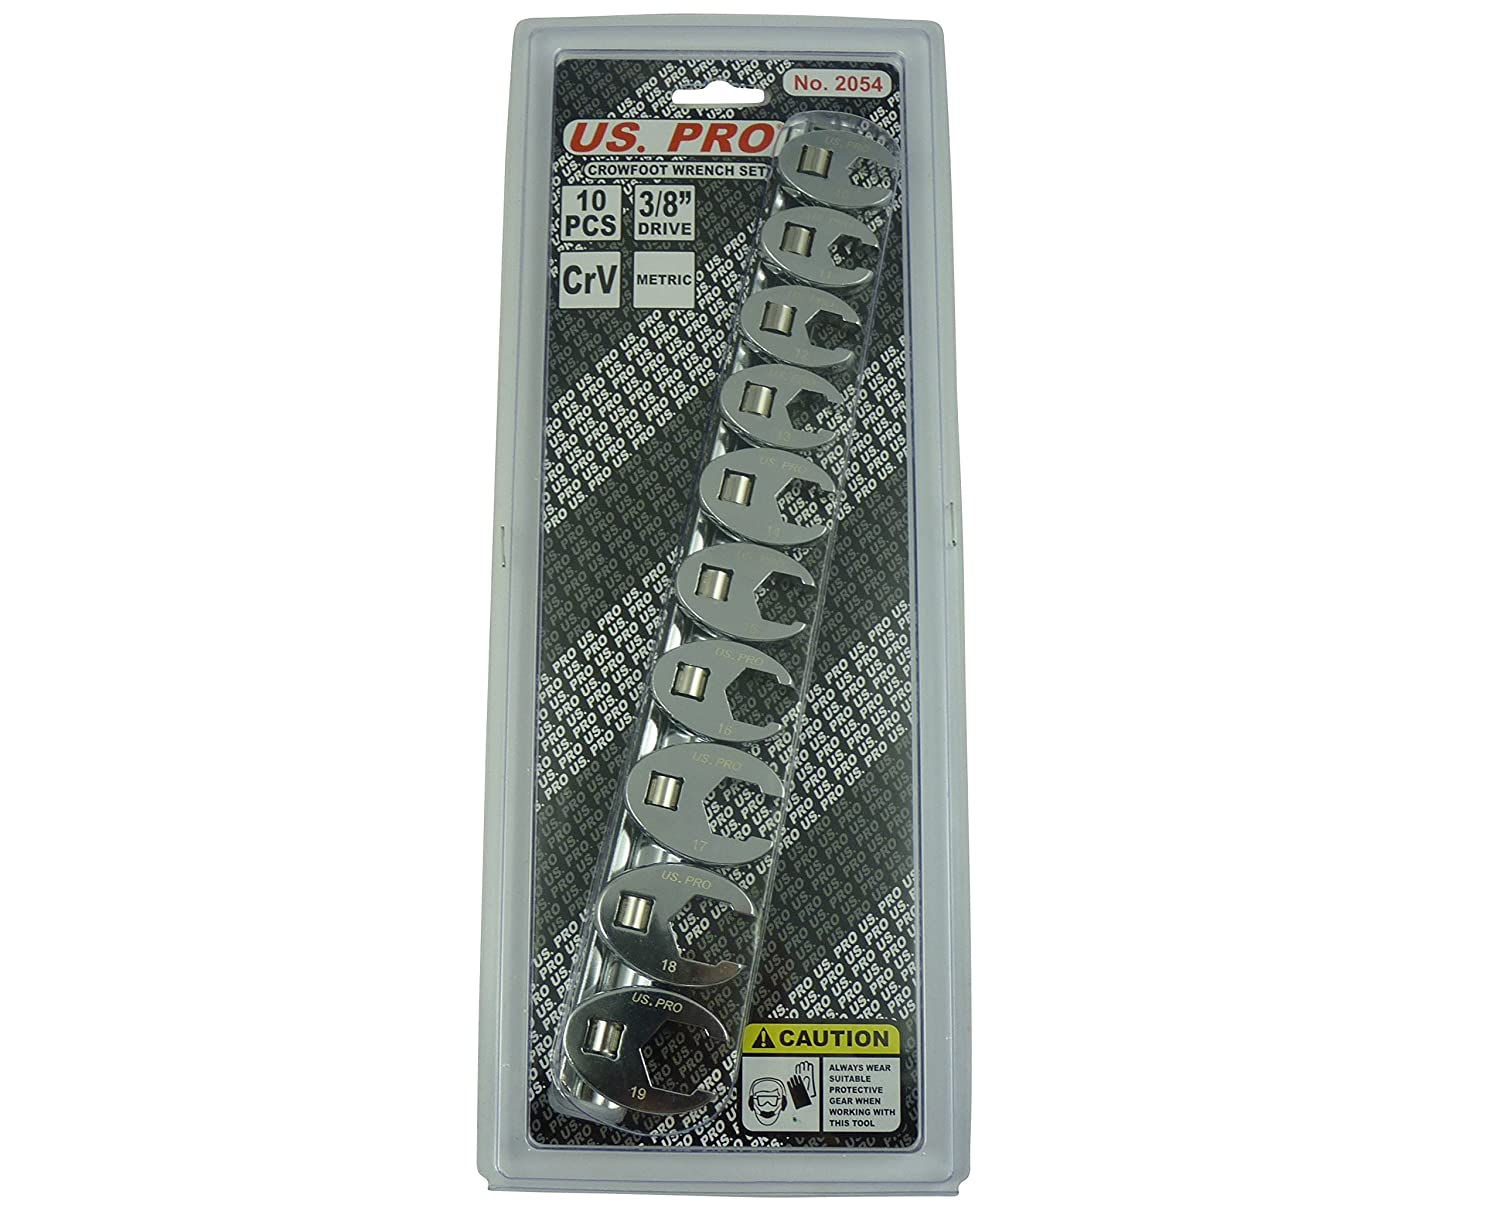 US PRO 10pc 3//8 dr Crowfoot Crowsfeet Crows Foot Spanner Wrench set 2054